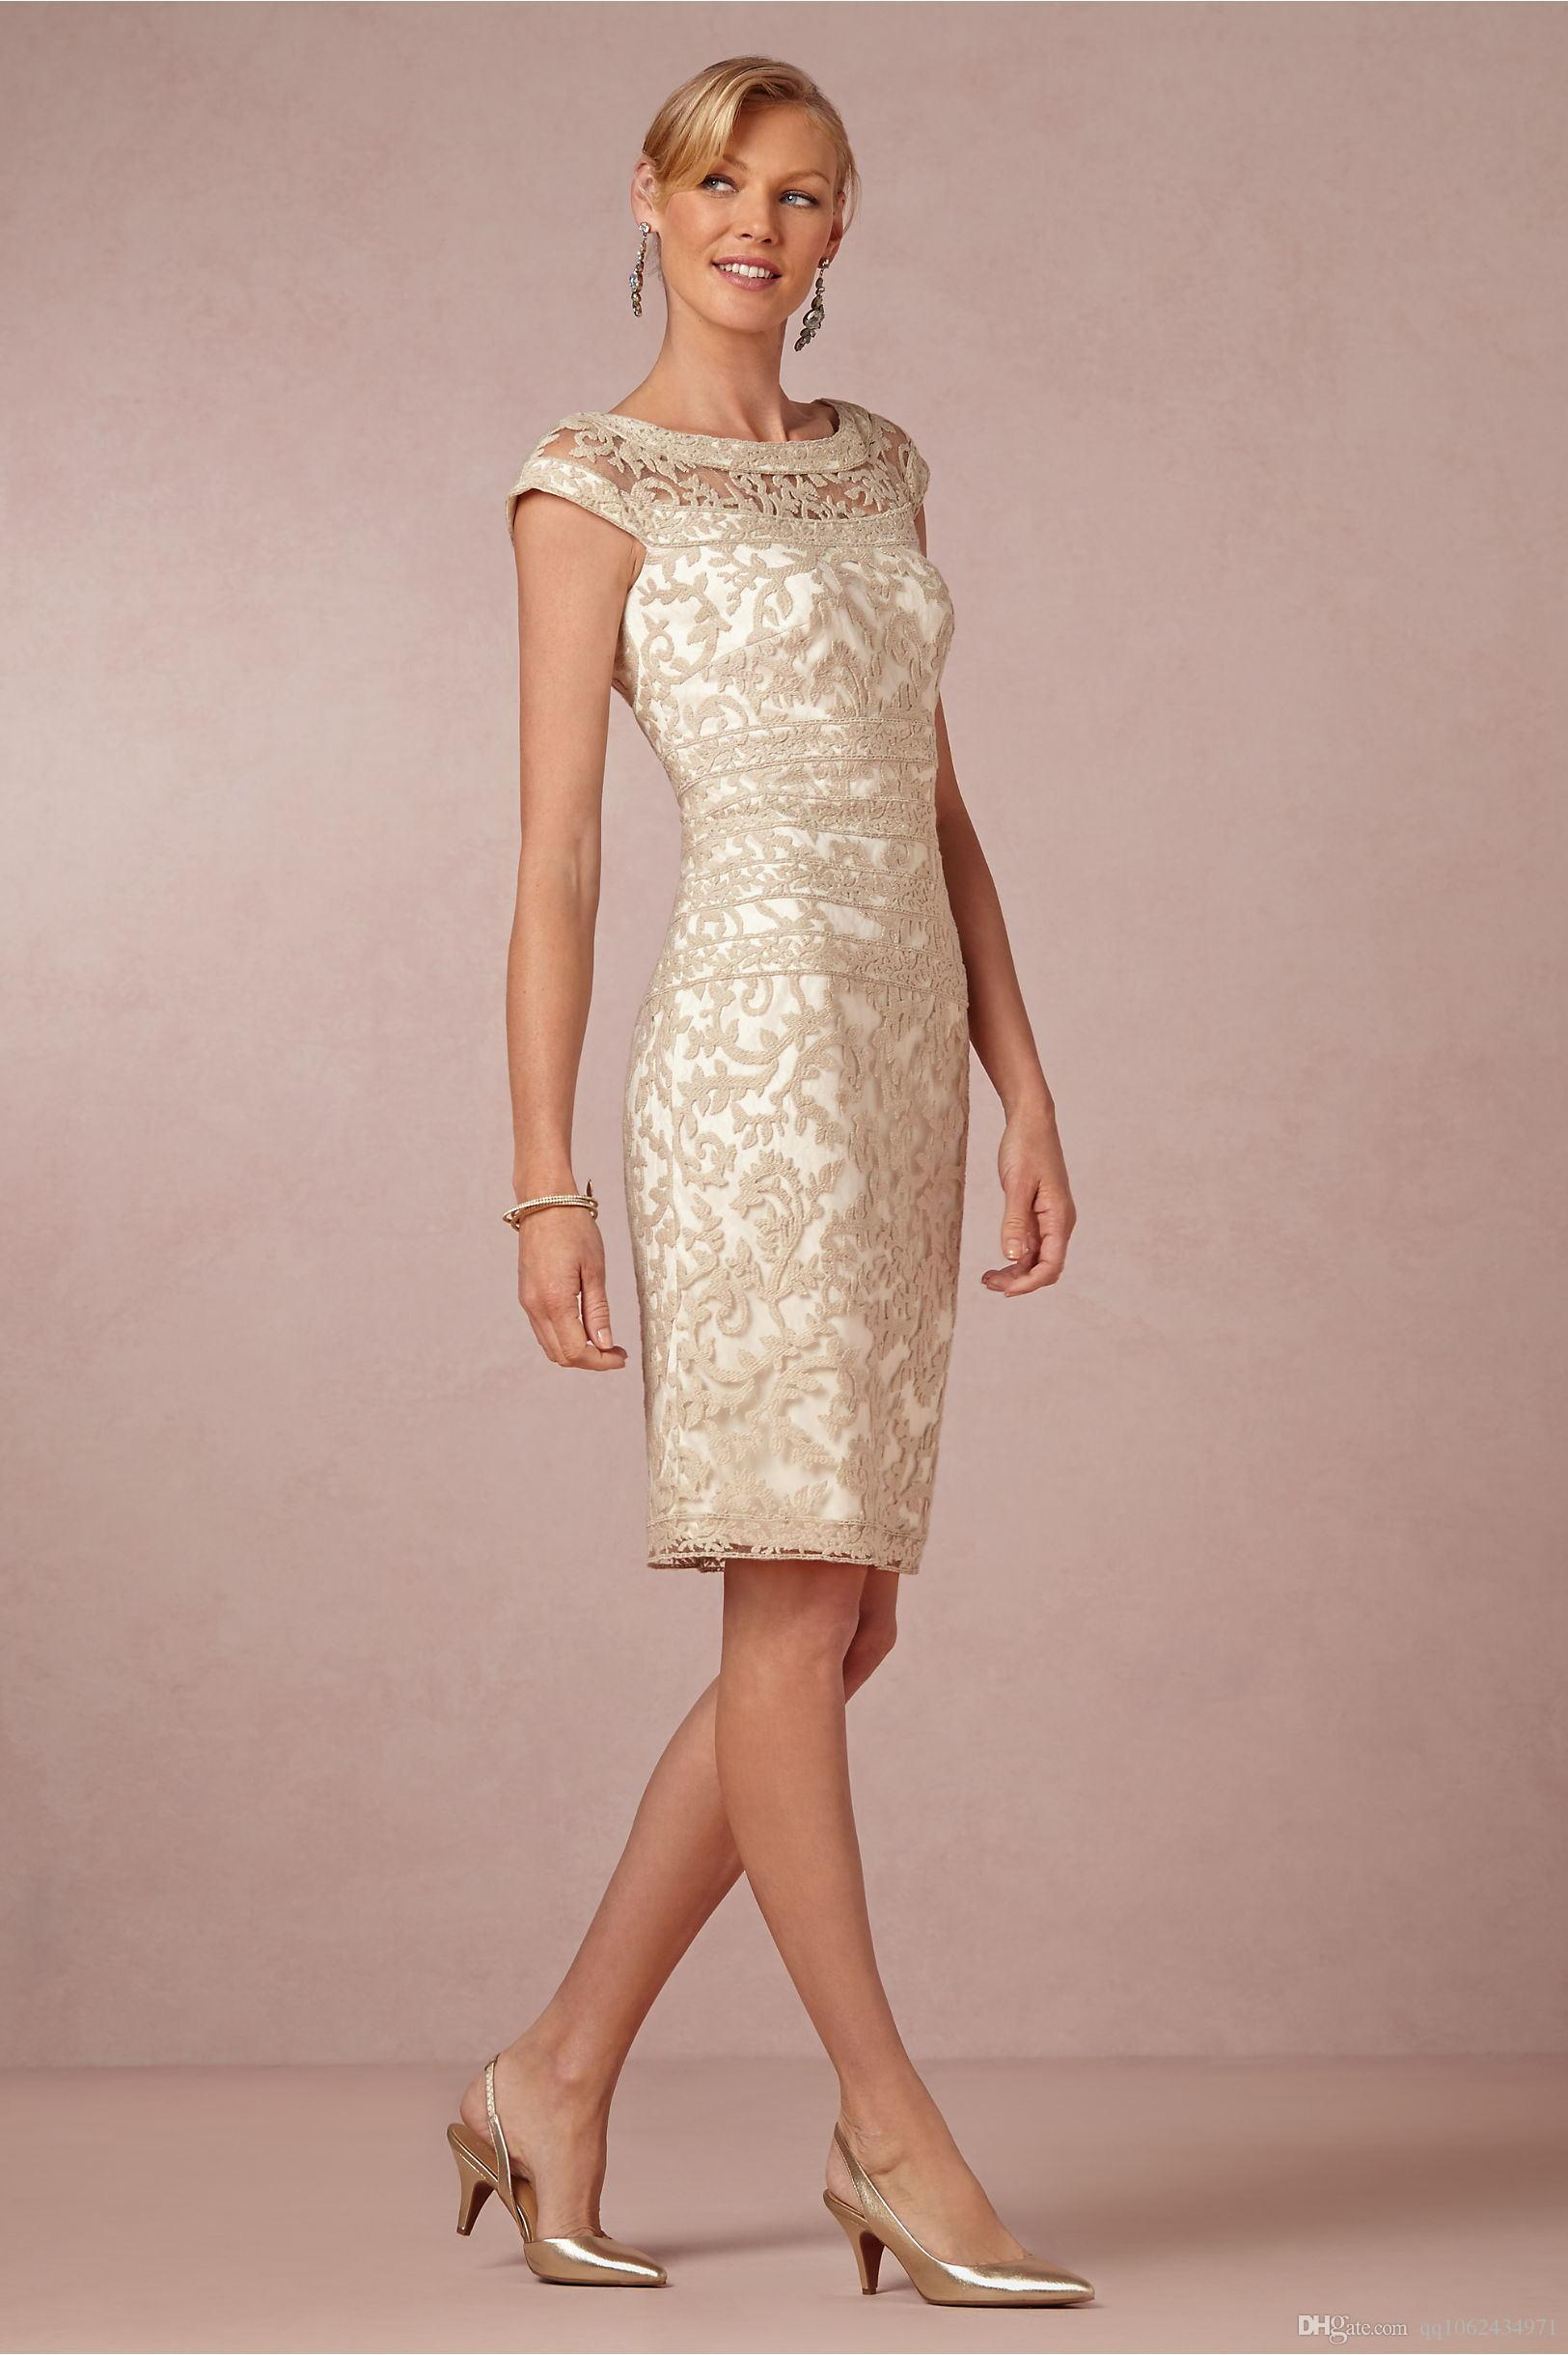 Cream and Gold Knee Length Dress